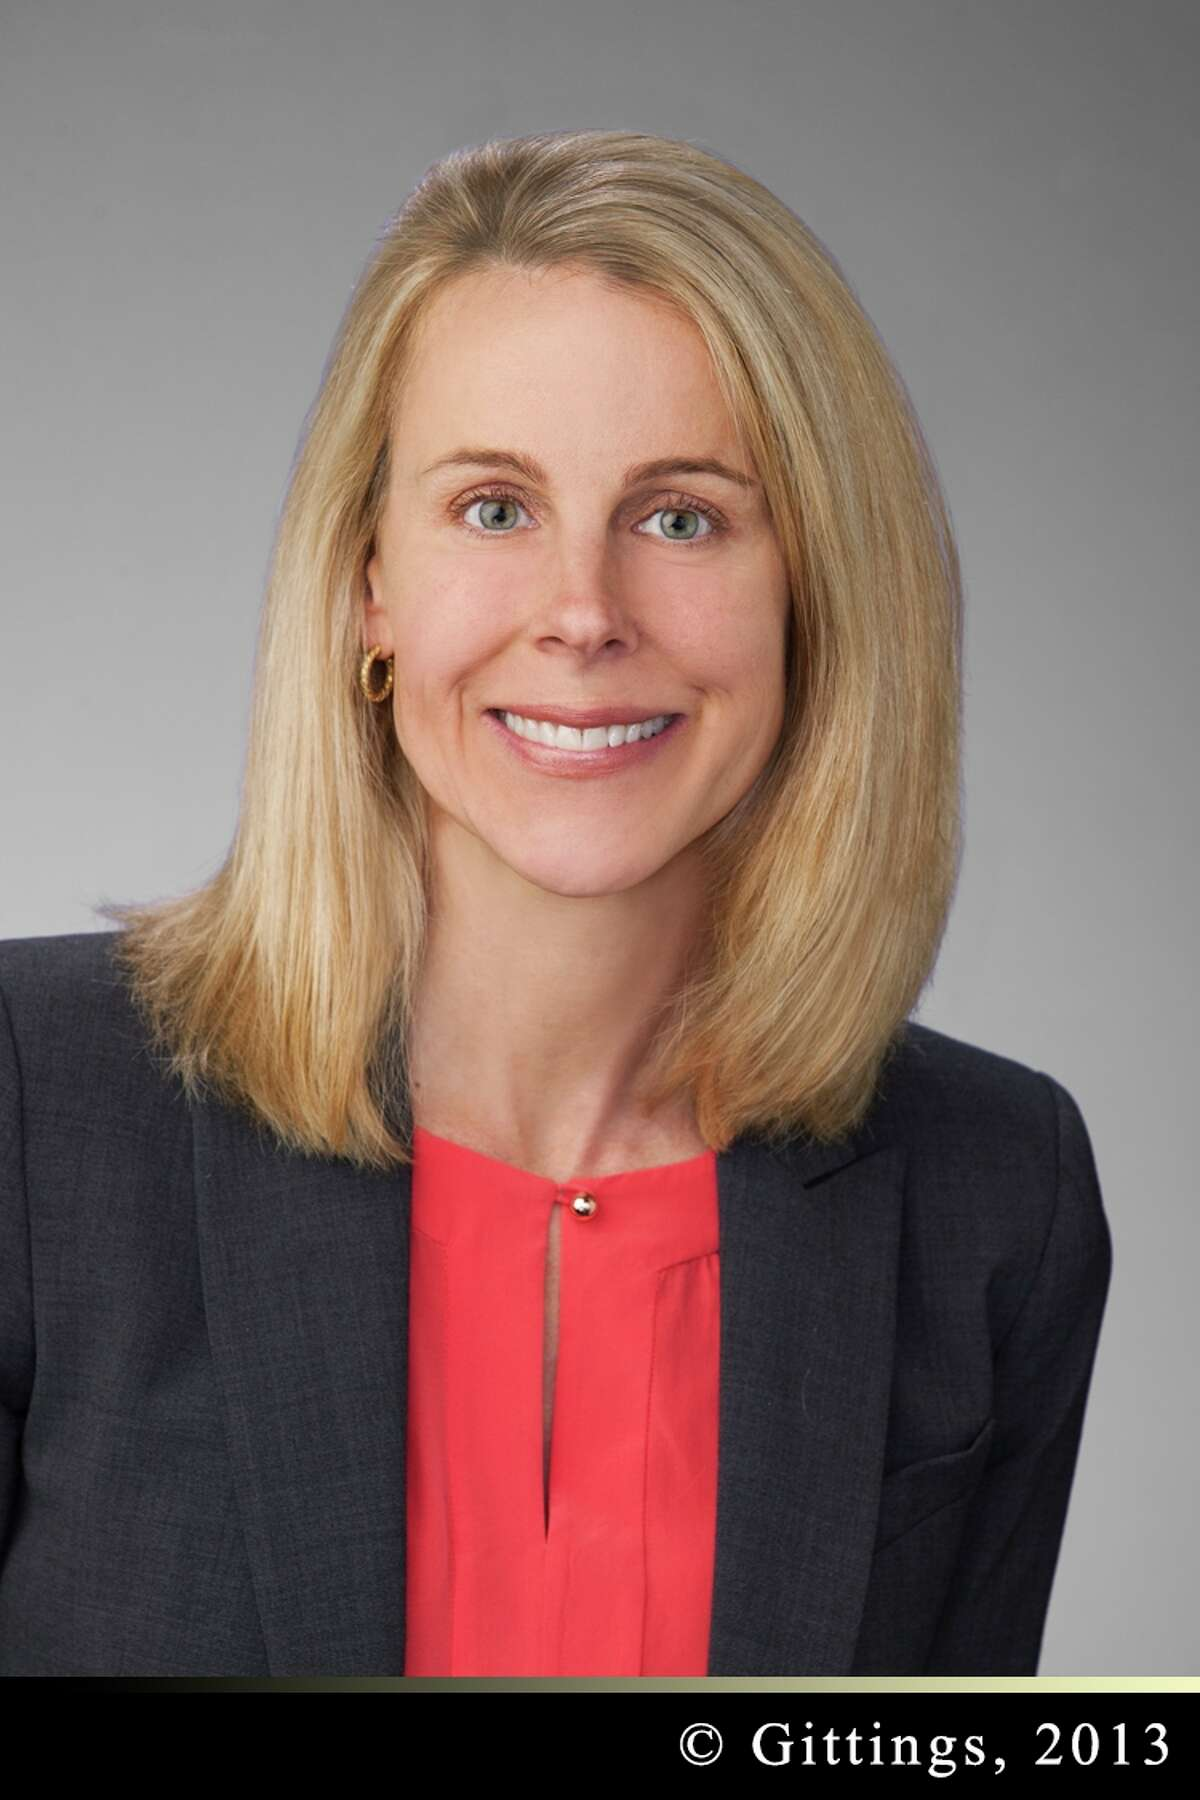 Citi Commercial Bank has named Cynthia Goodwin to the position of Senior Vice President and Relationship Manager. She is focused on driving growth for the Houston-based Commercial Banking team. She targets middle market companies in the manufacturing, distribution and service industries.